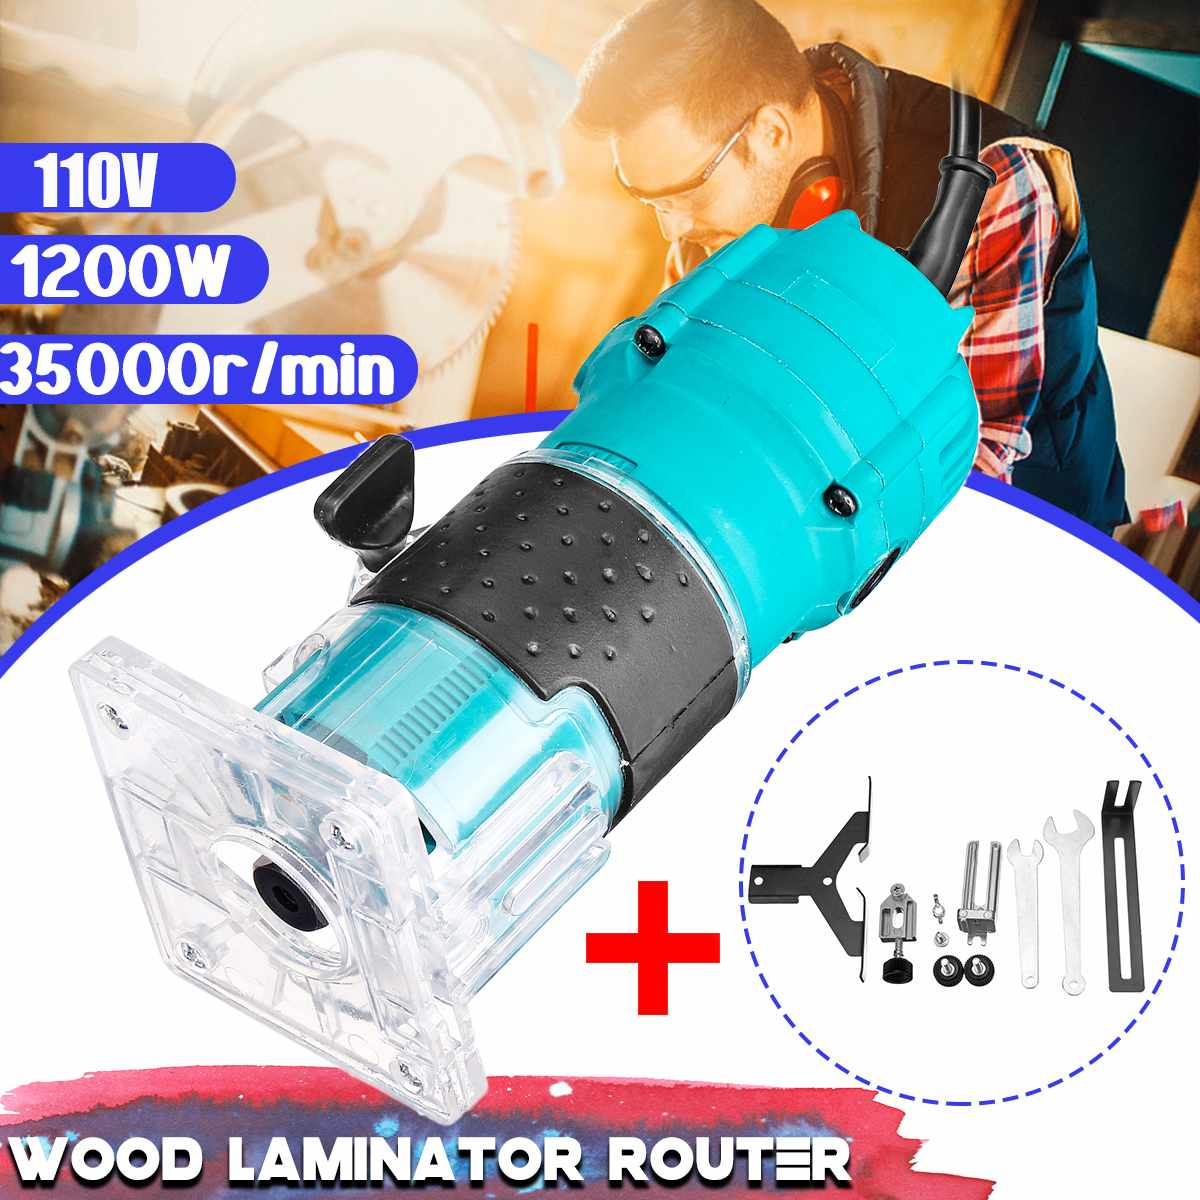 110V 1200W 35000r/min Electric Hand Trimmer Wood Laminator Router Edge Joiners 1/4 Inch Carving Machine Edge Trimmer Power Tools